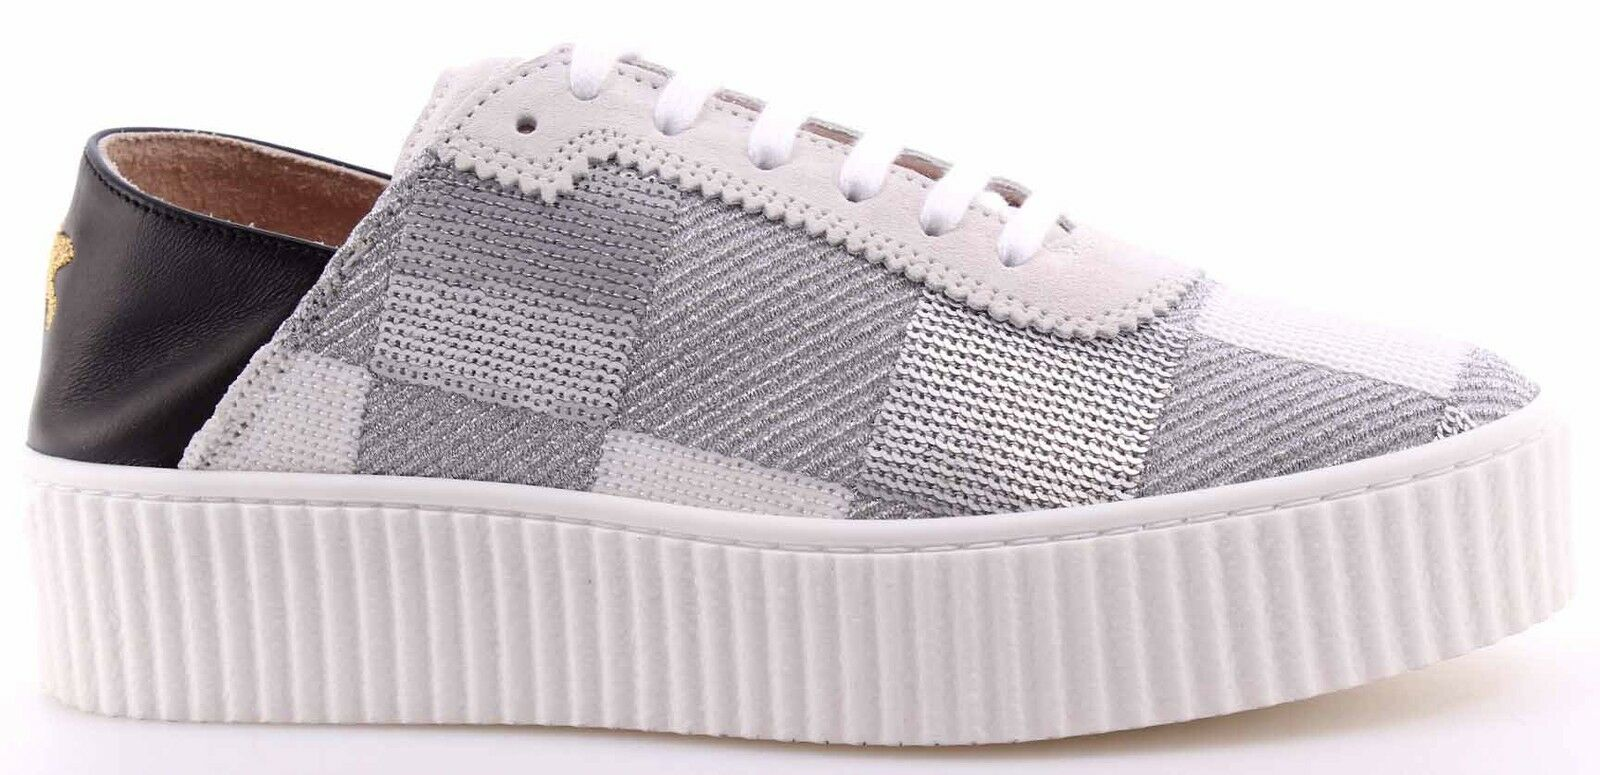 Chaussures Femme baskets roseO Shine Baby Ungherse Paillettes Bianco argent